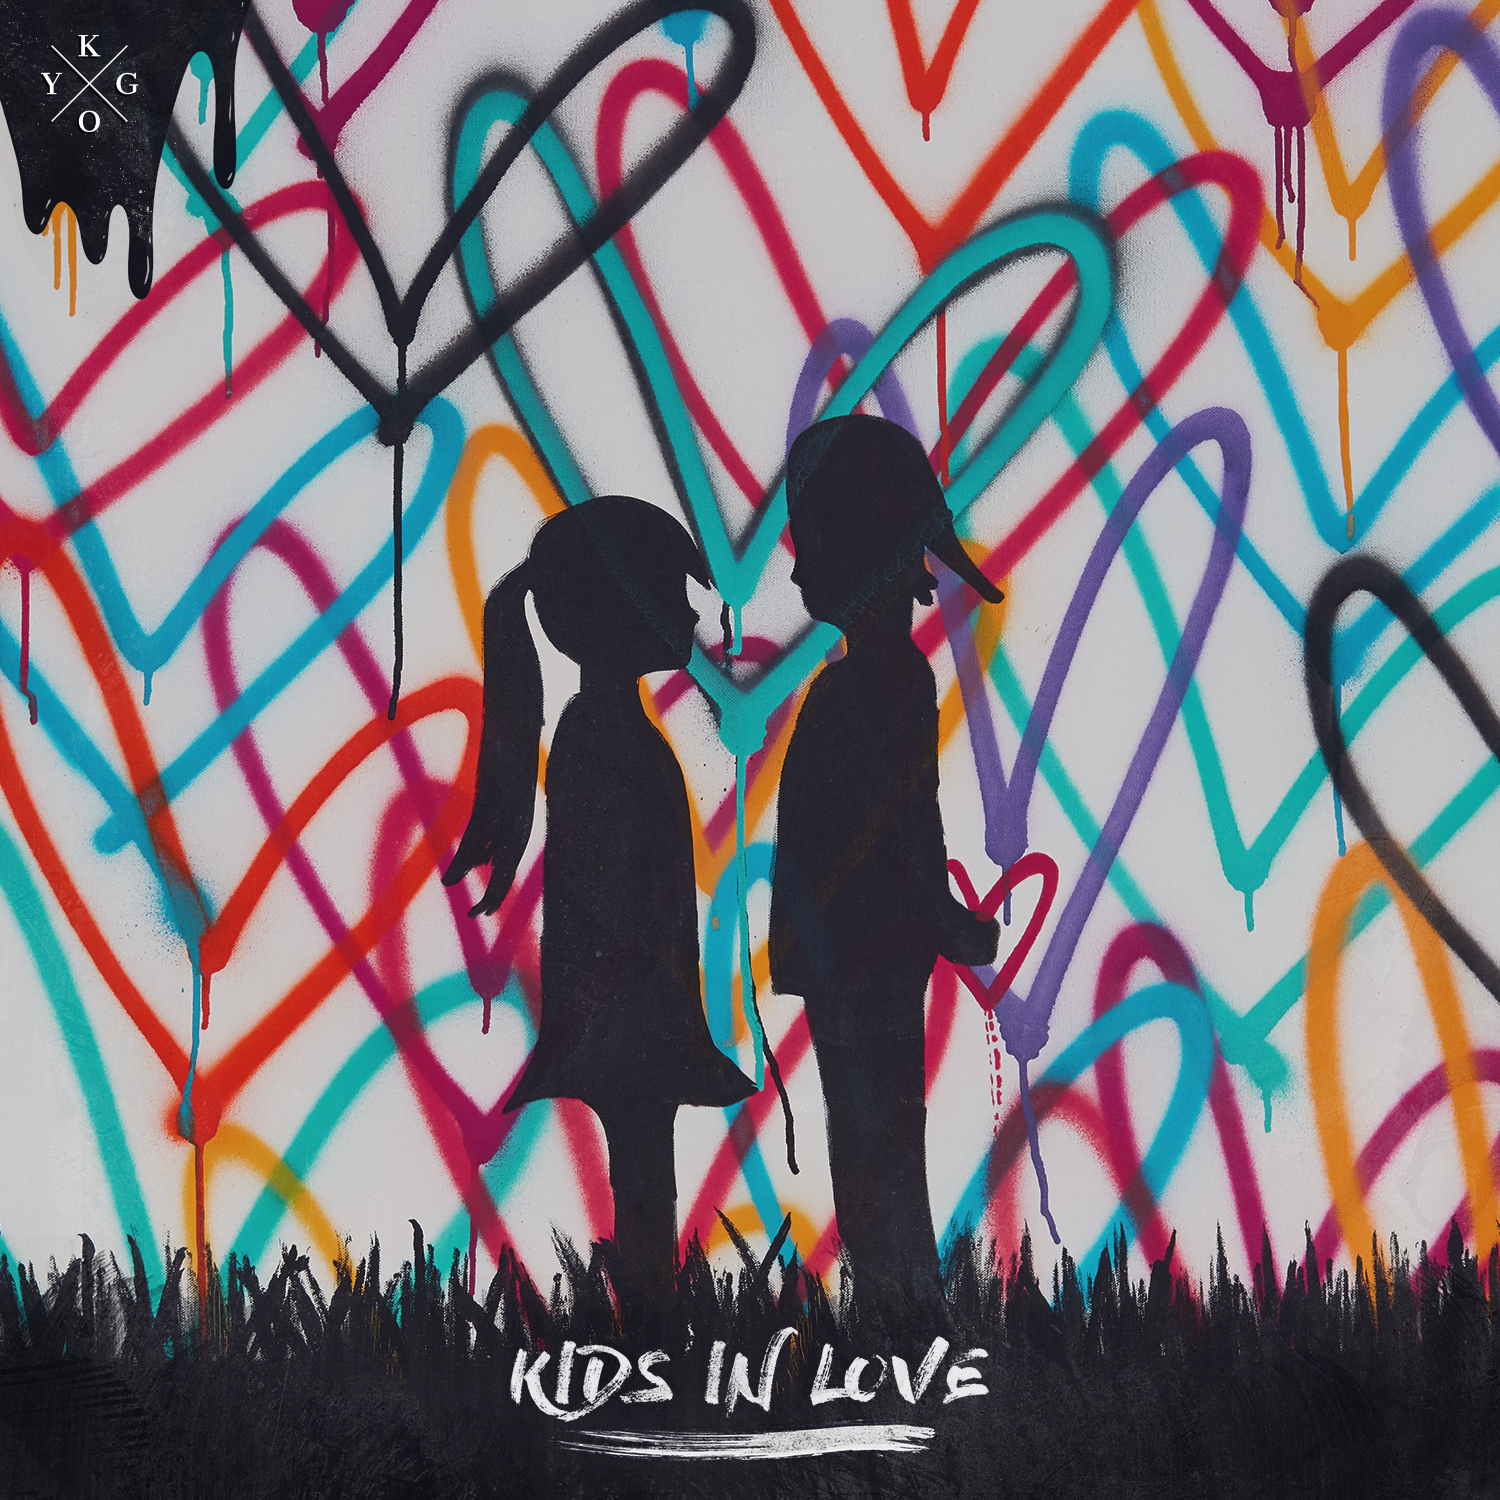 Kygo releases new single kids in love rca records for Craft fairs near me november 2017